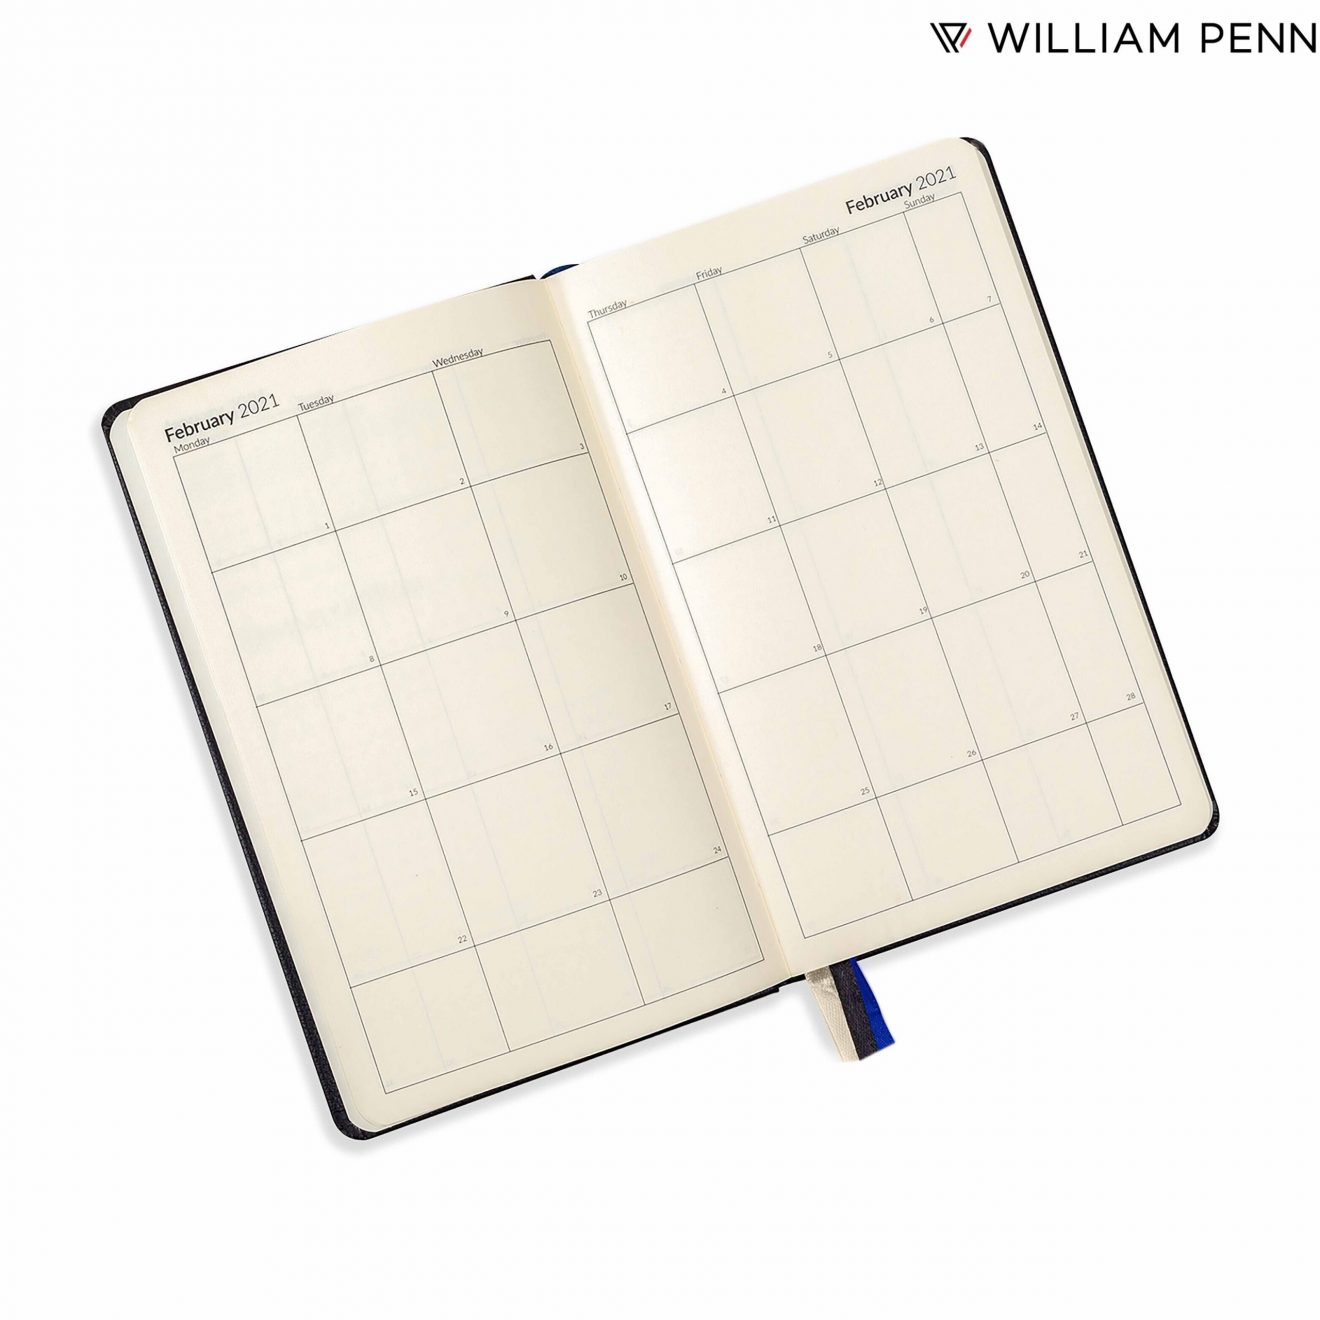 Pennline Calendar and Financial year planner by William Penn